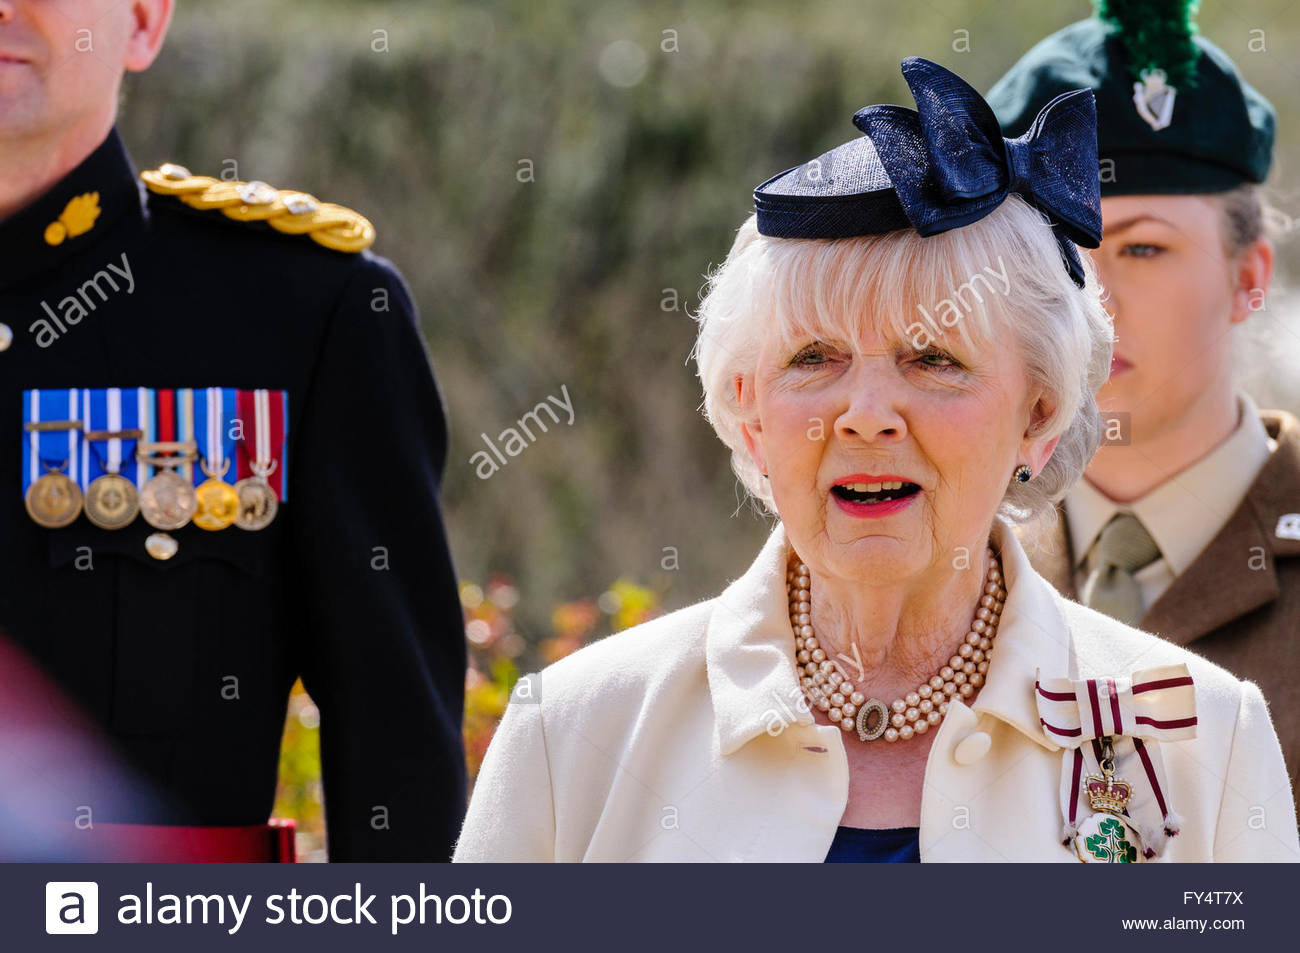 british representative stock photos british representative stock hillsborough northern apr 21 2016 lord lieutenant of county antrim mrs